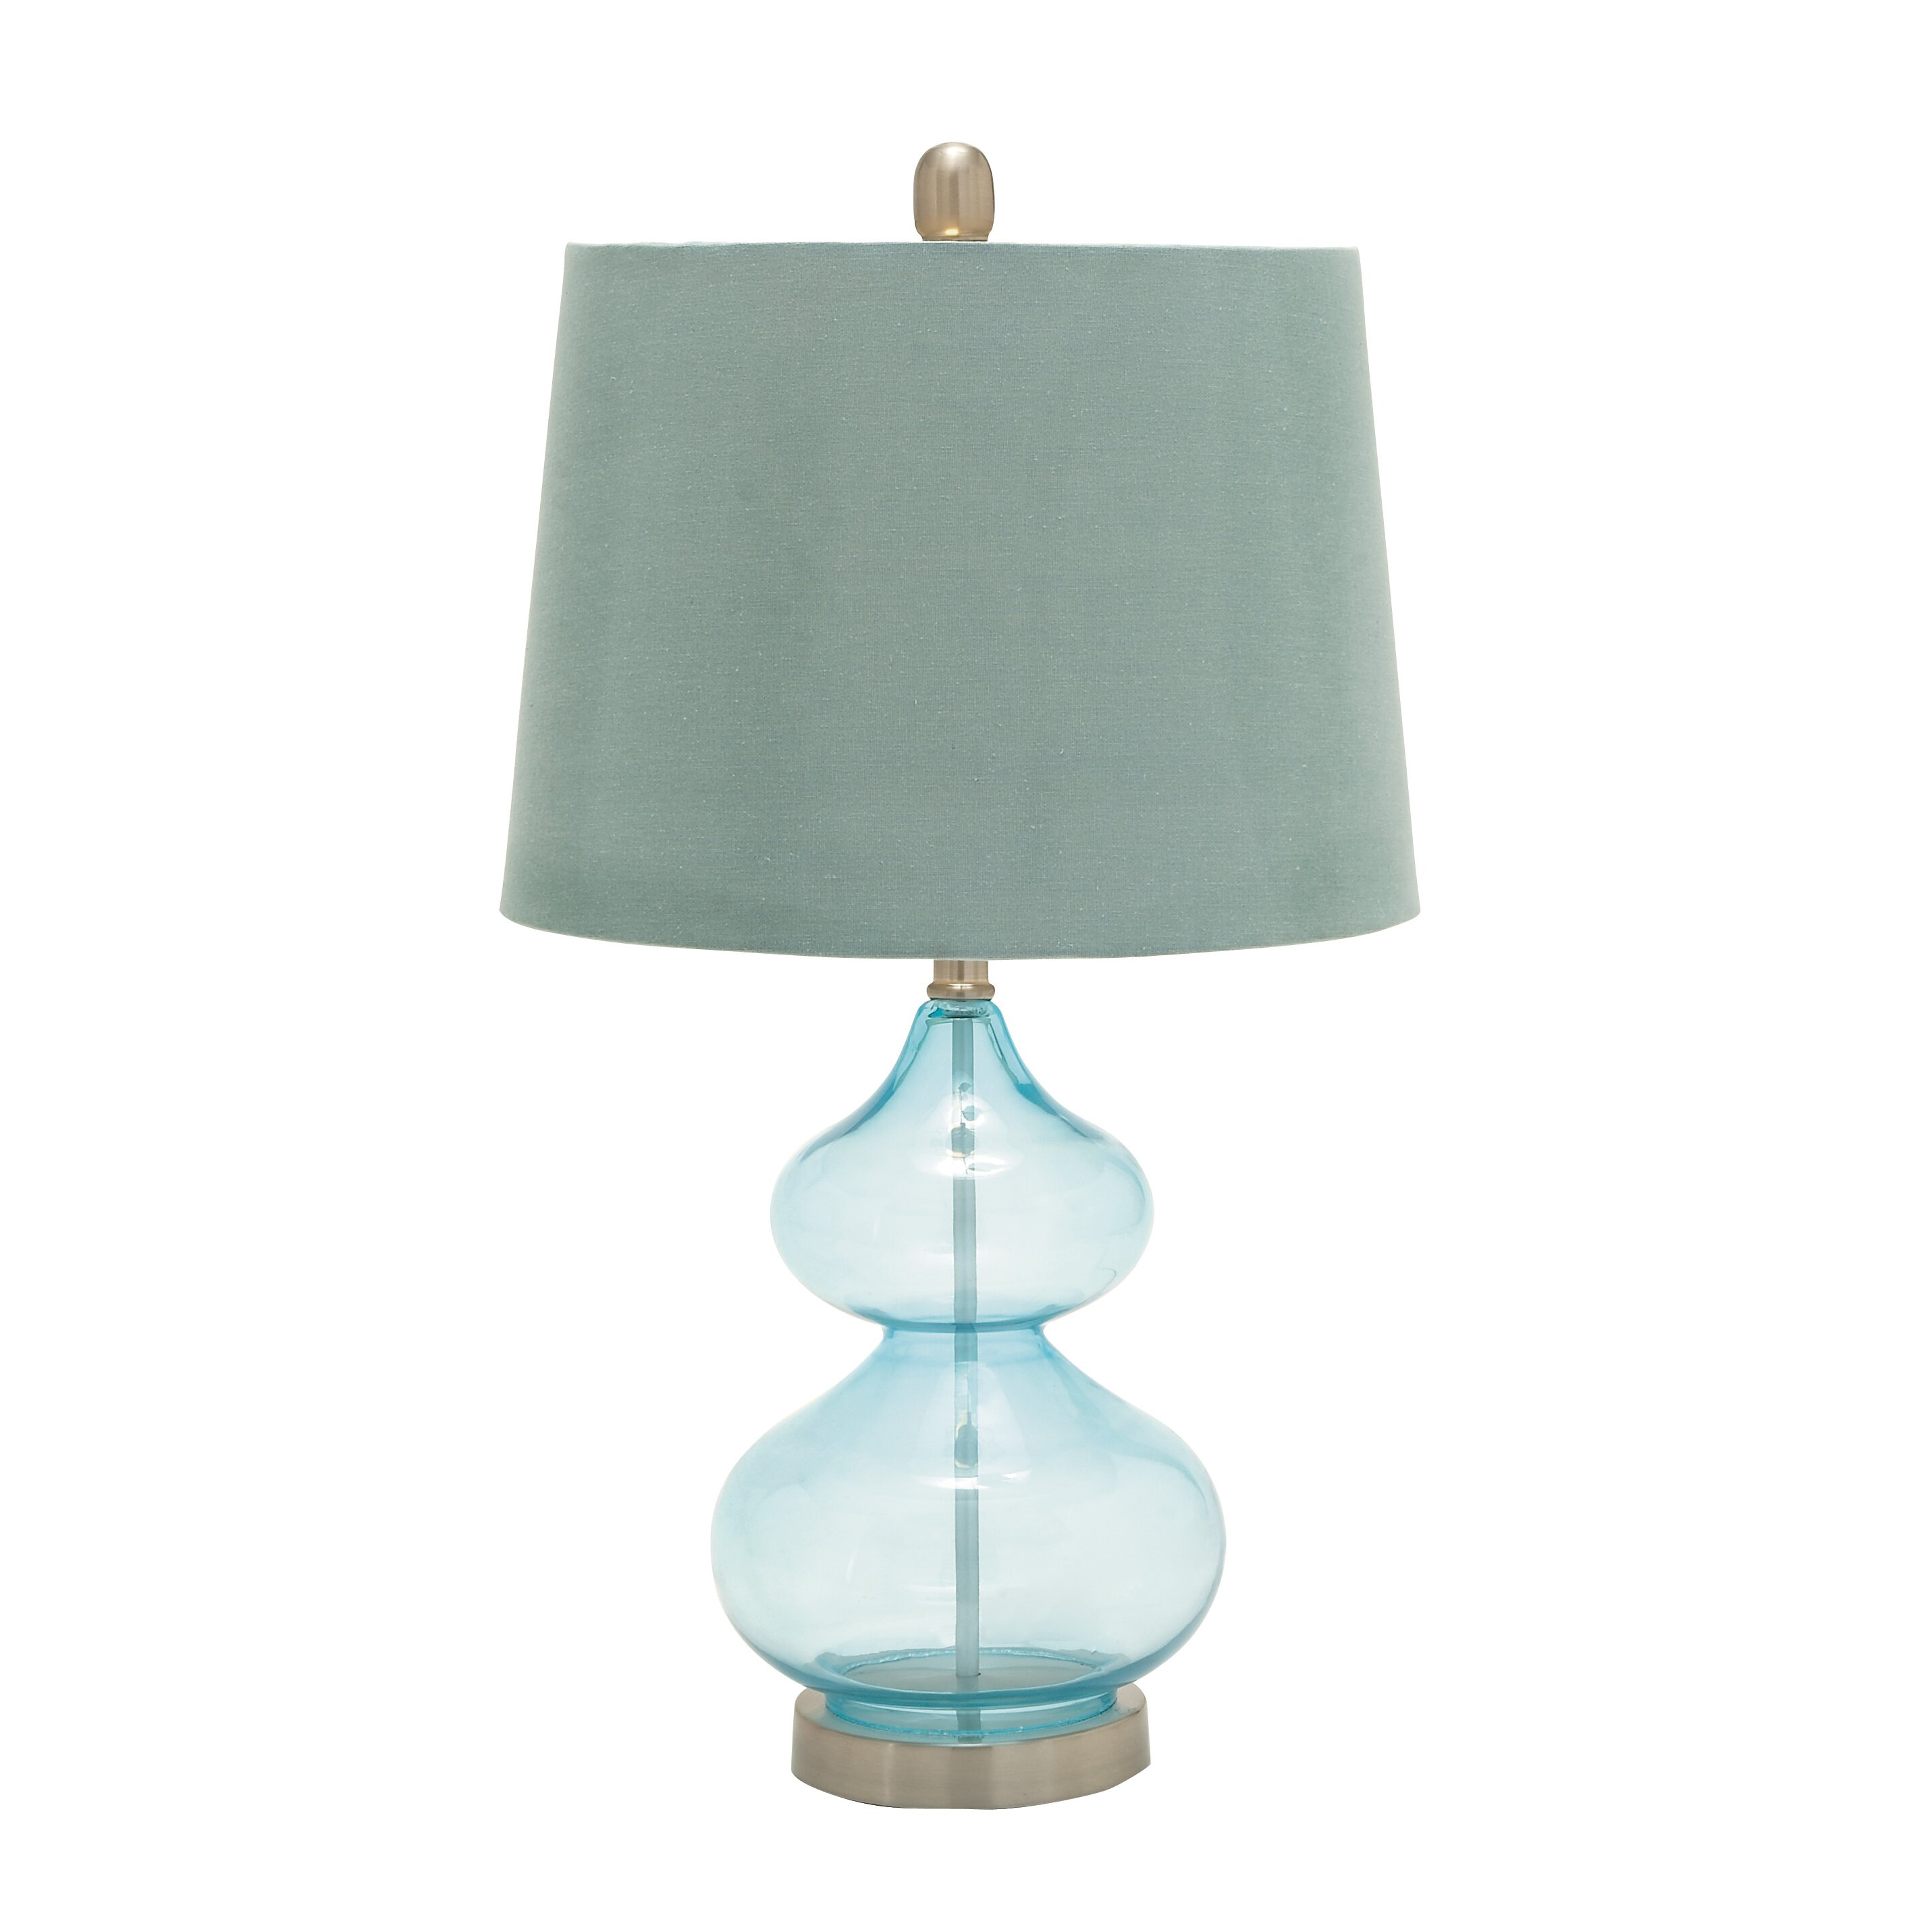 "Woodland Imports Unique 25"" H Table Lamp With Empire Shade"